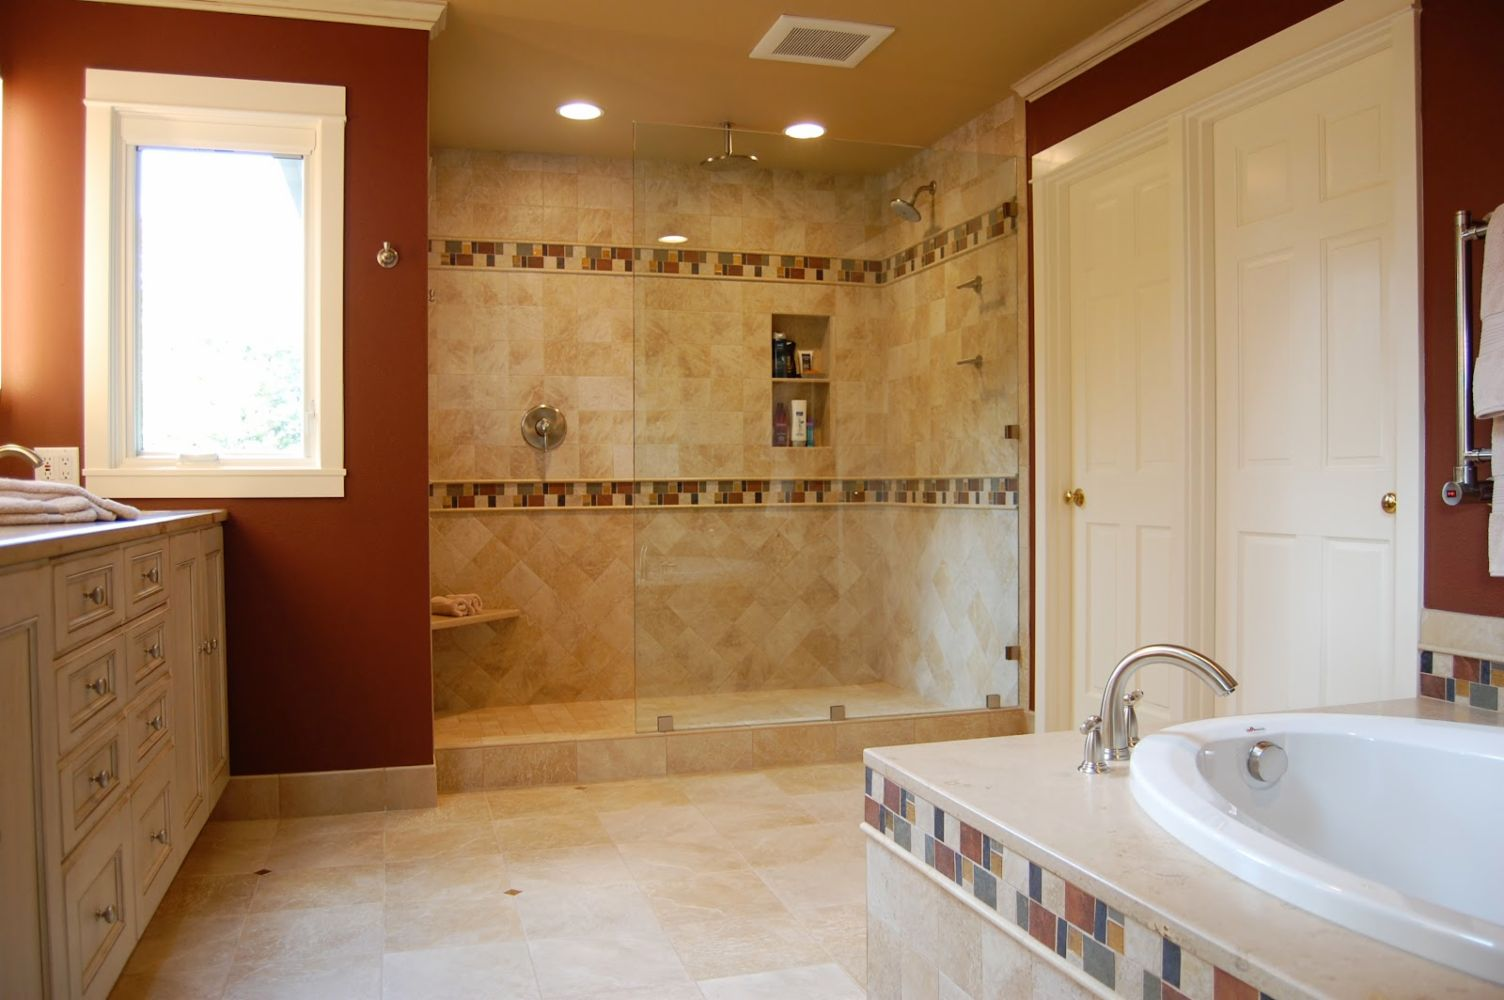 Bathroom Remodel Nashville Tn hardwood flooring in nashville, tn - nashville floor covering